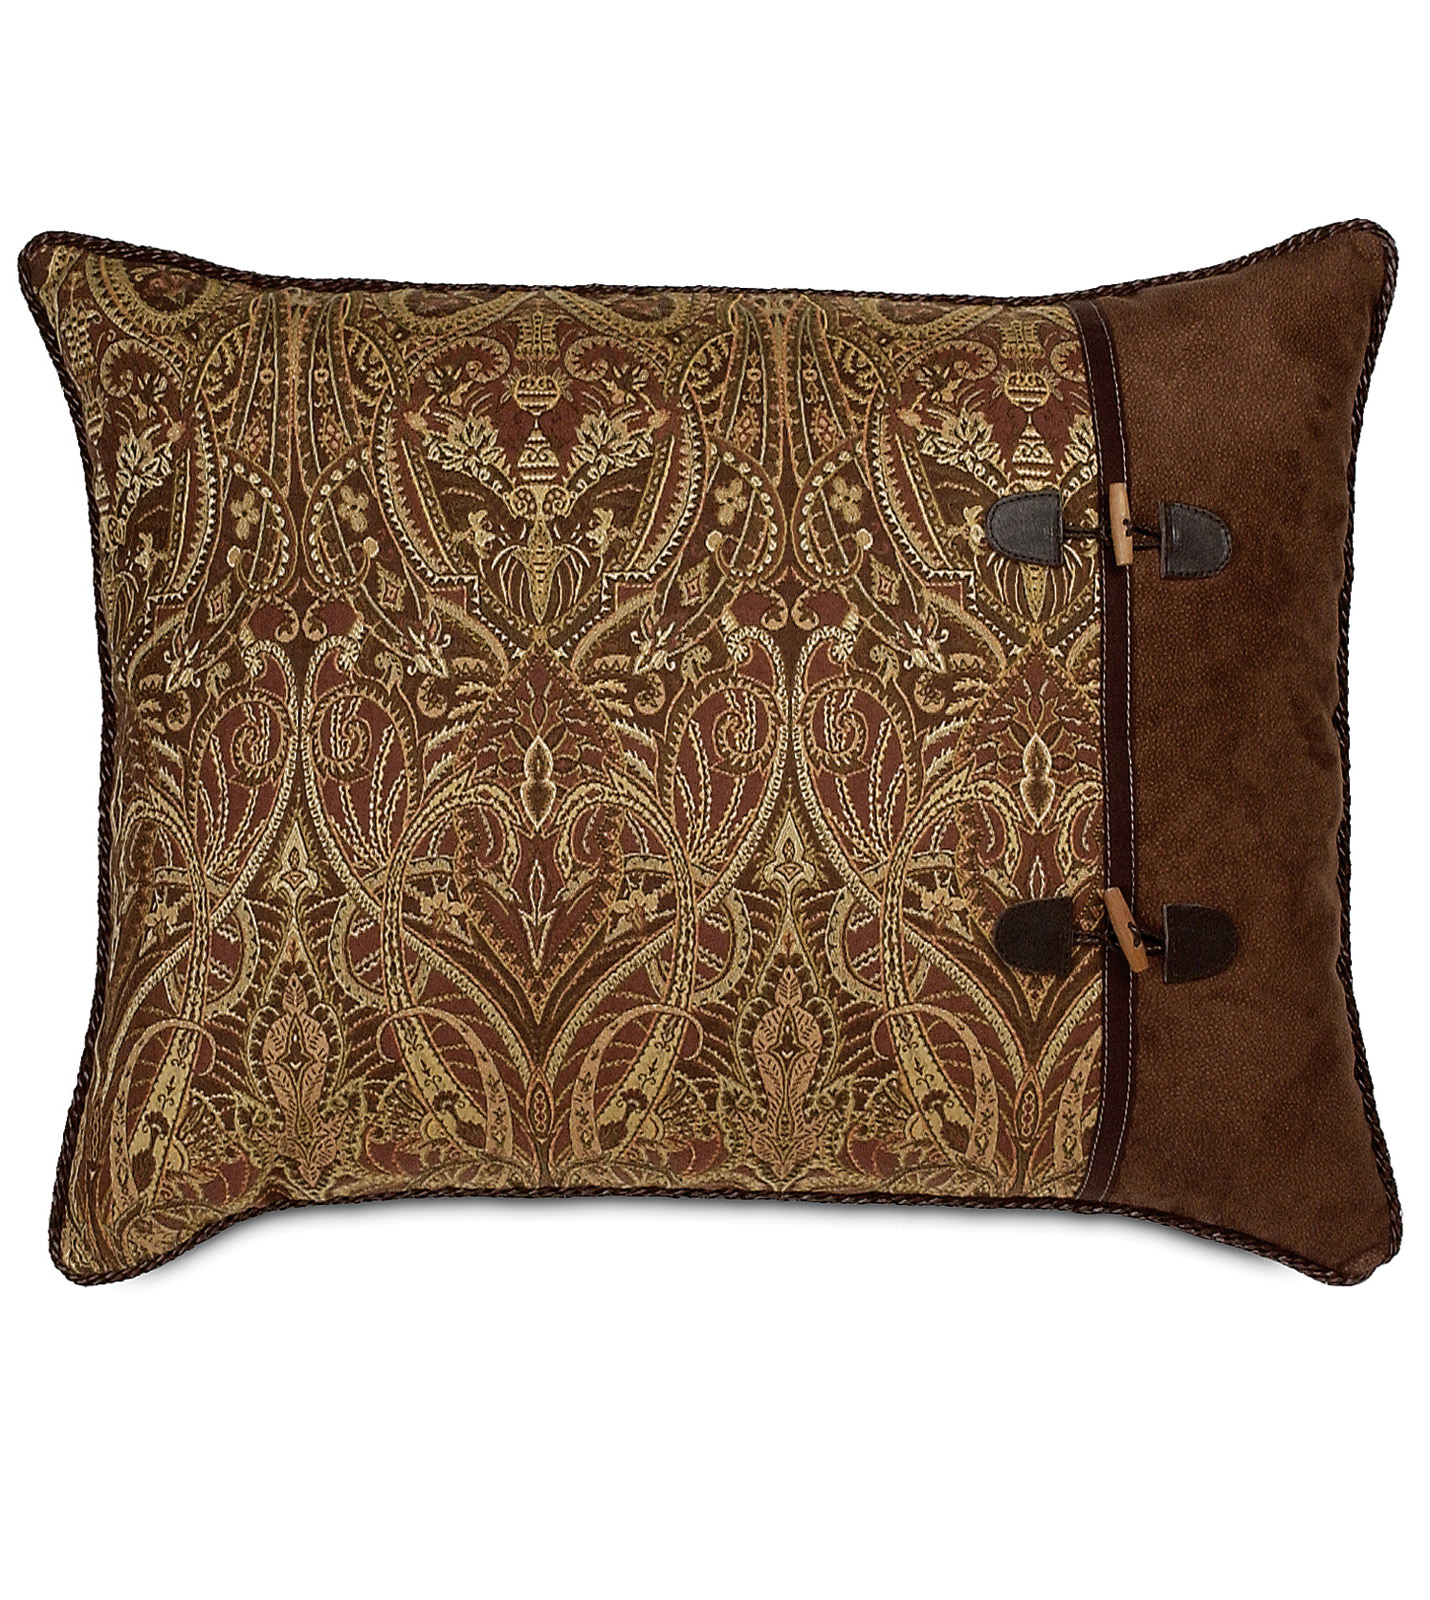 Sheffield Home Throw Pillow : Belmont Home Decor Luxury Bedding - SHEFFIELD STANDARD SHAM RIGHT Luxury Bedding, Decorative ...